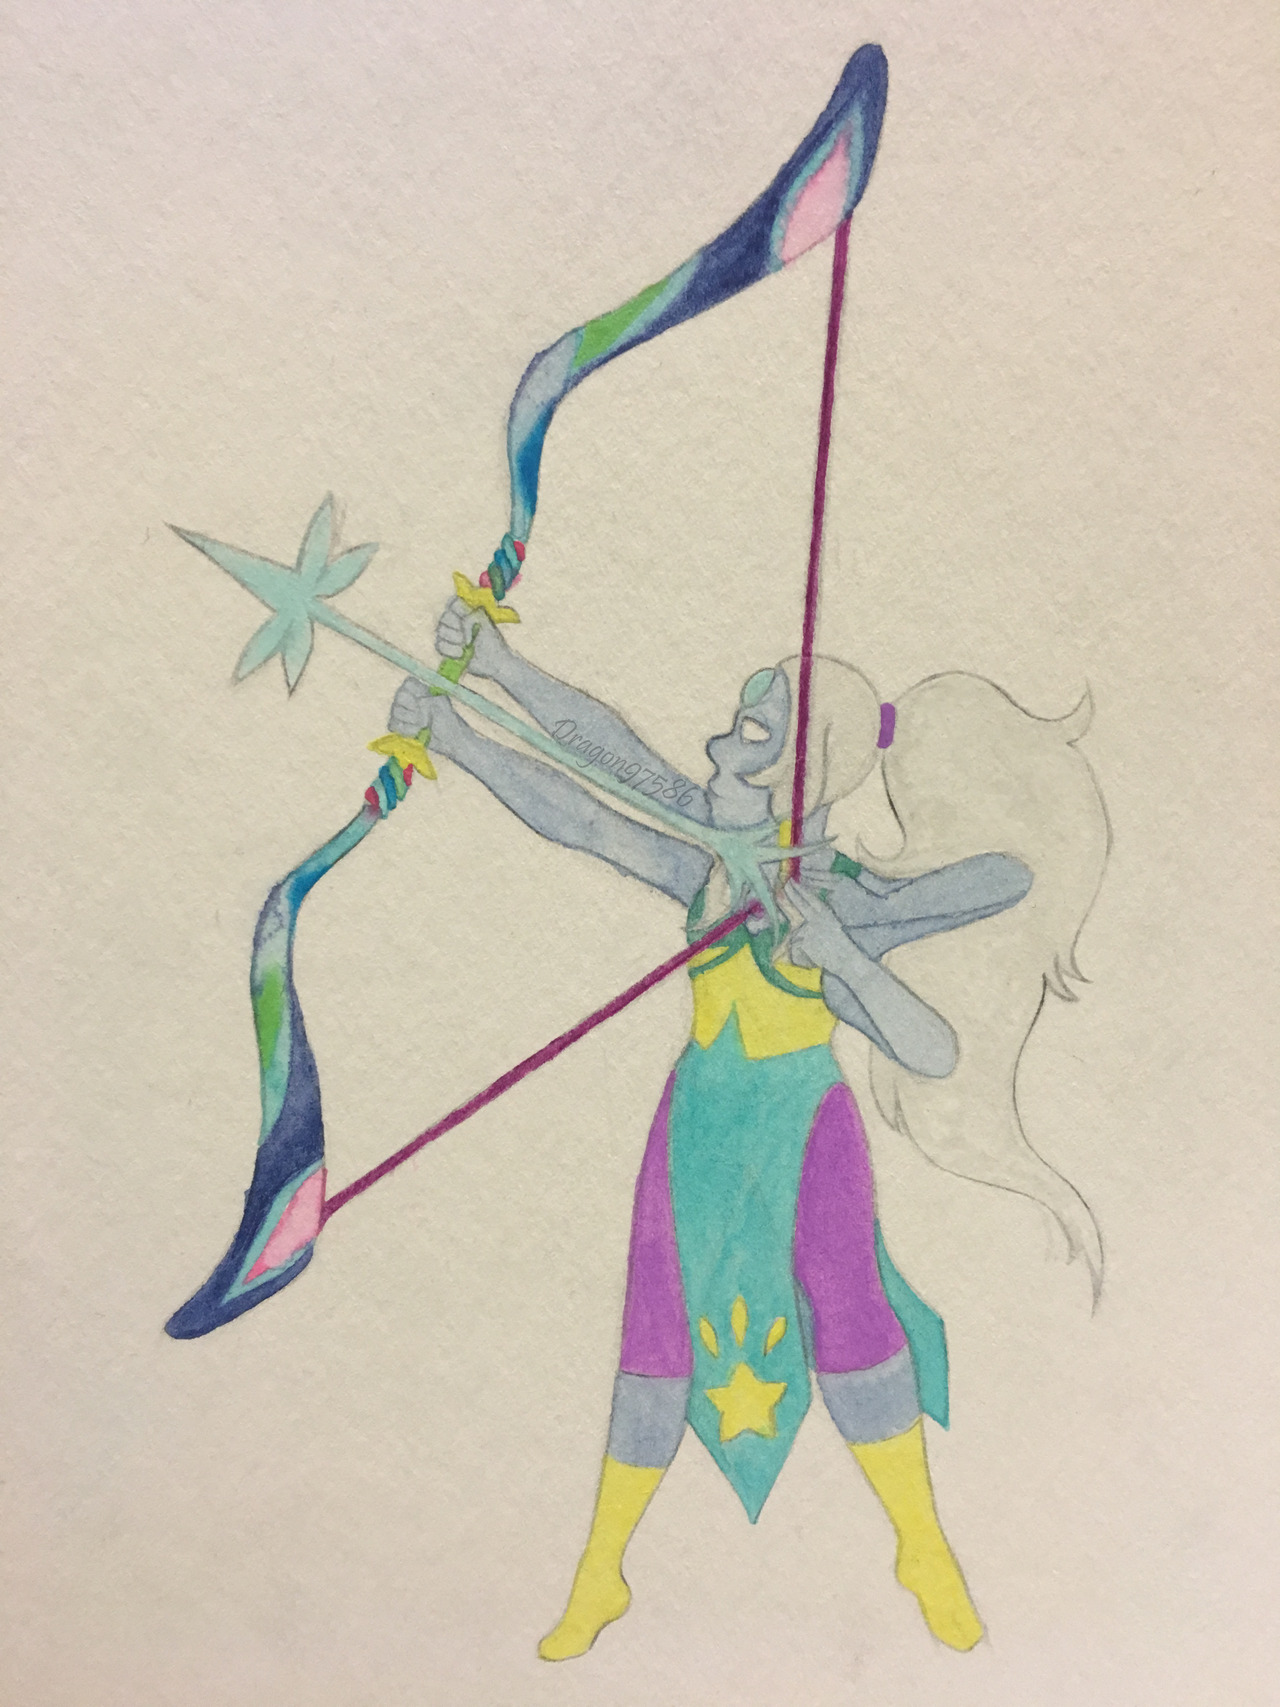 Opal Steven Universe and its characters belong to Rebecca Sugar and the Crewniverse